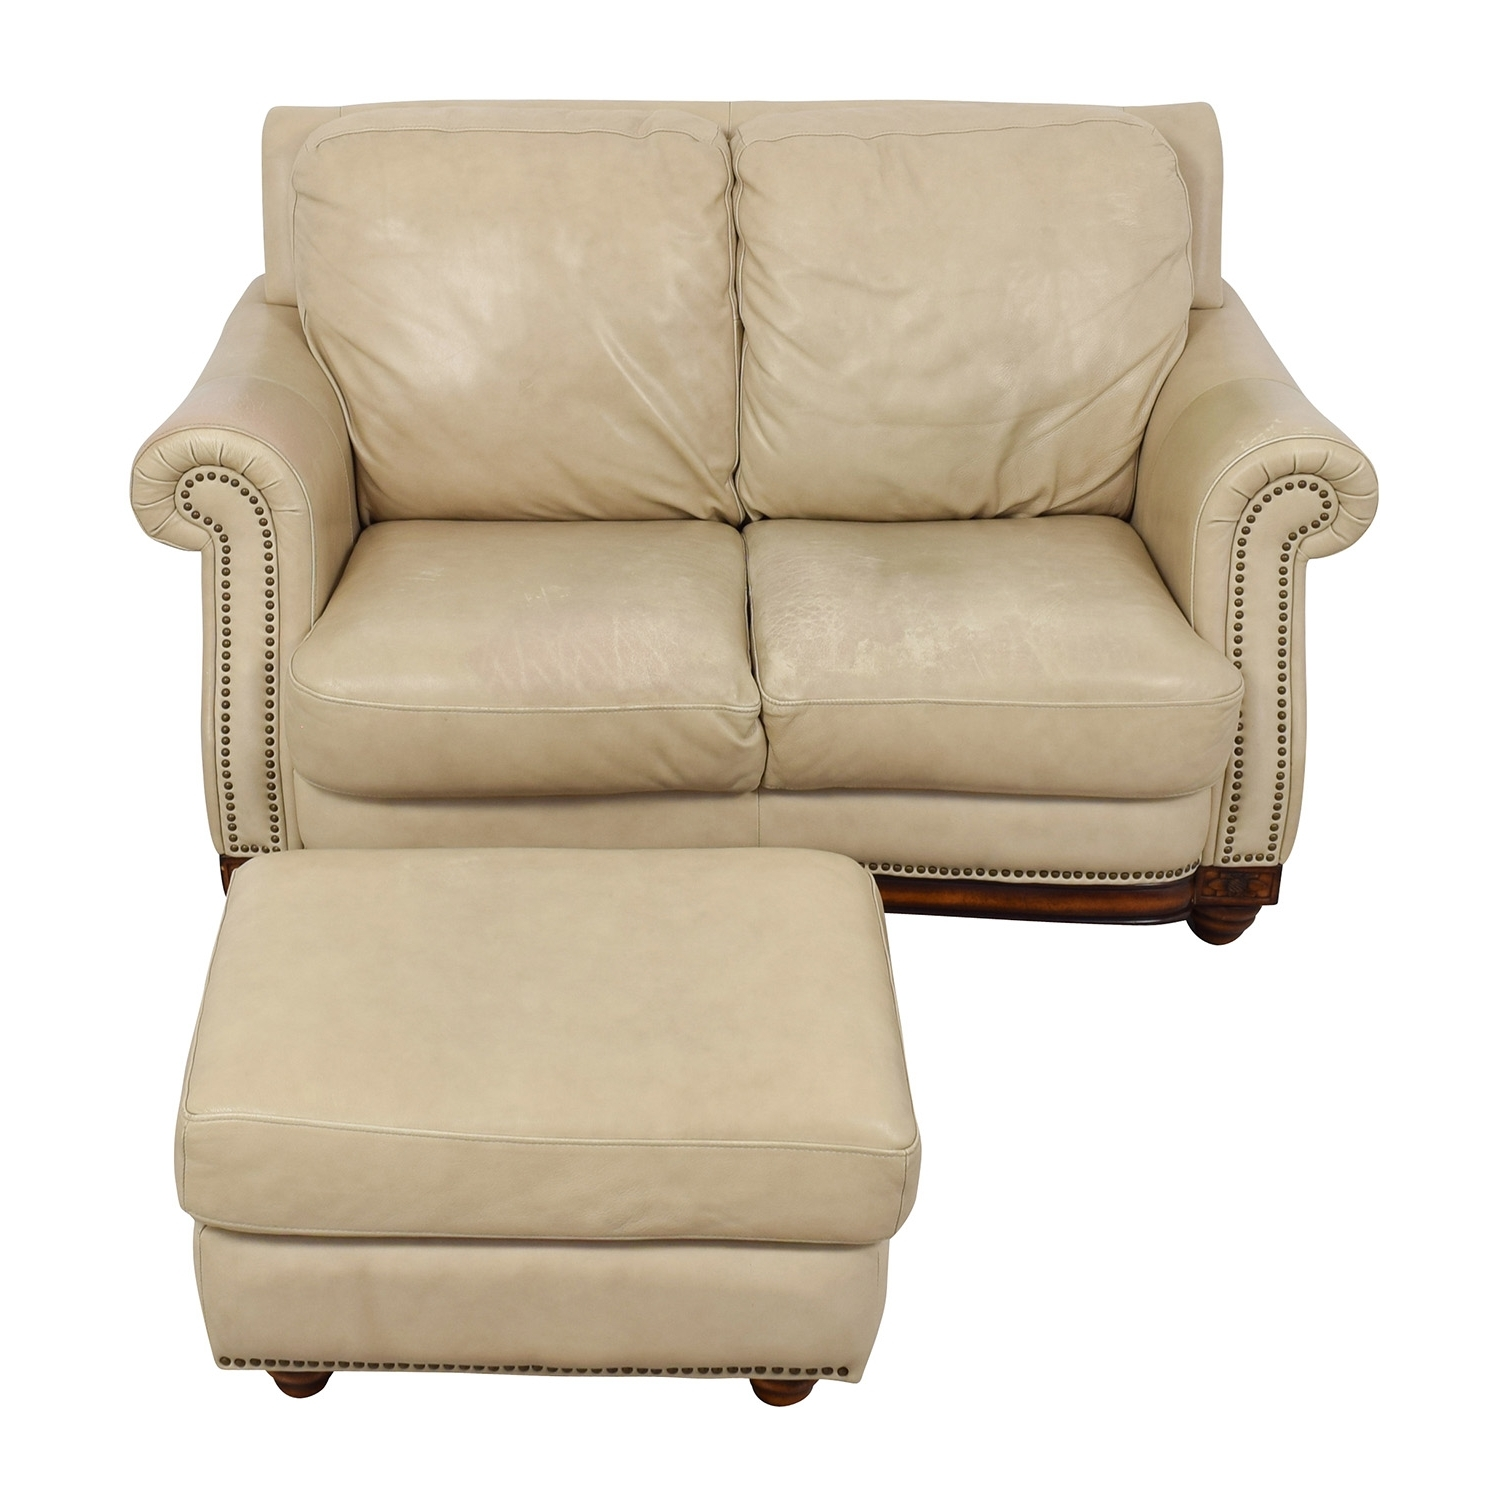 [%74% Off – Raymour & Flanigan Raymour & Flanigan Studded Tan Intended For Well Known Loveseats With Ottoman|Loveseats With Ottoman Regarding Most Popular 74% Off – Raymour & Flanigan Raymour & Flanigan Studded Tan|Well Known Loveseats With Ottoman Intended For 74% Off – Raymour & Flanigan Raymour & Flanigan Studded Tan|Preferred 74% Off – Raymour & Flanigan Raymour & Flanigan Studded Tan Within Loveseats With Ottoman%] (View 11 of 15)